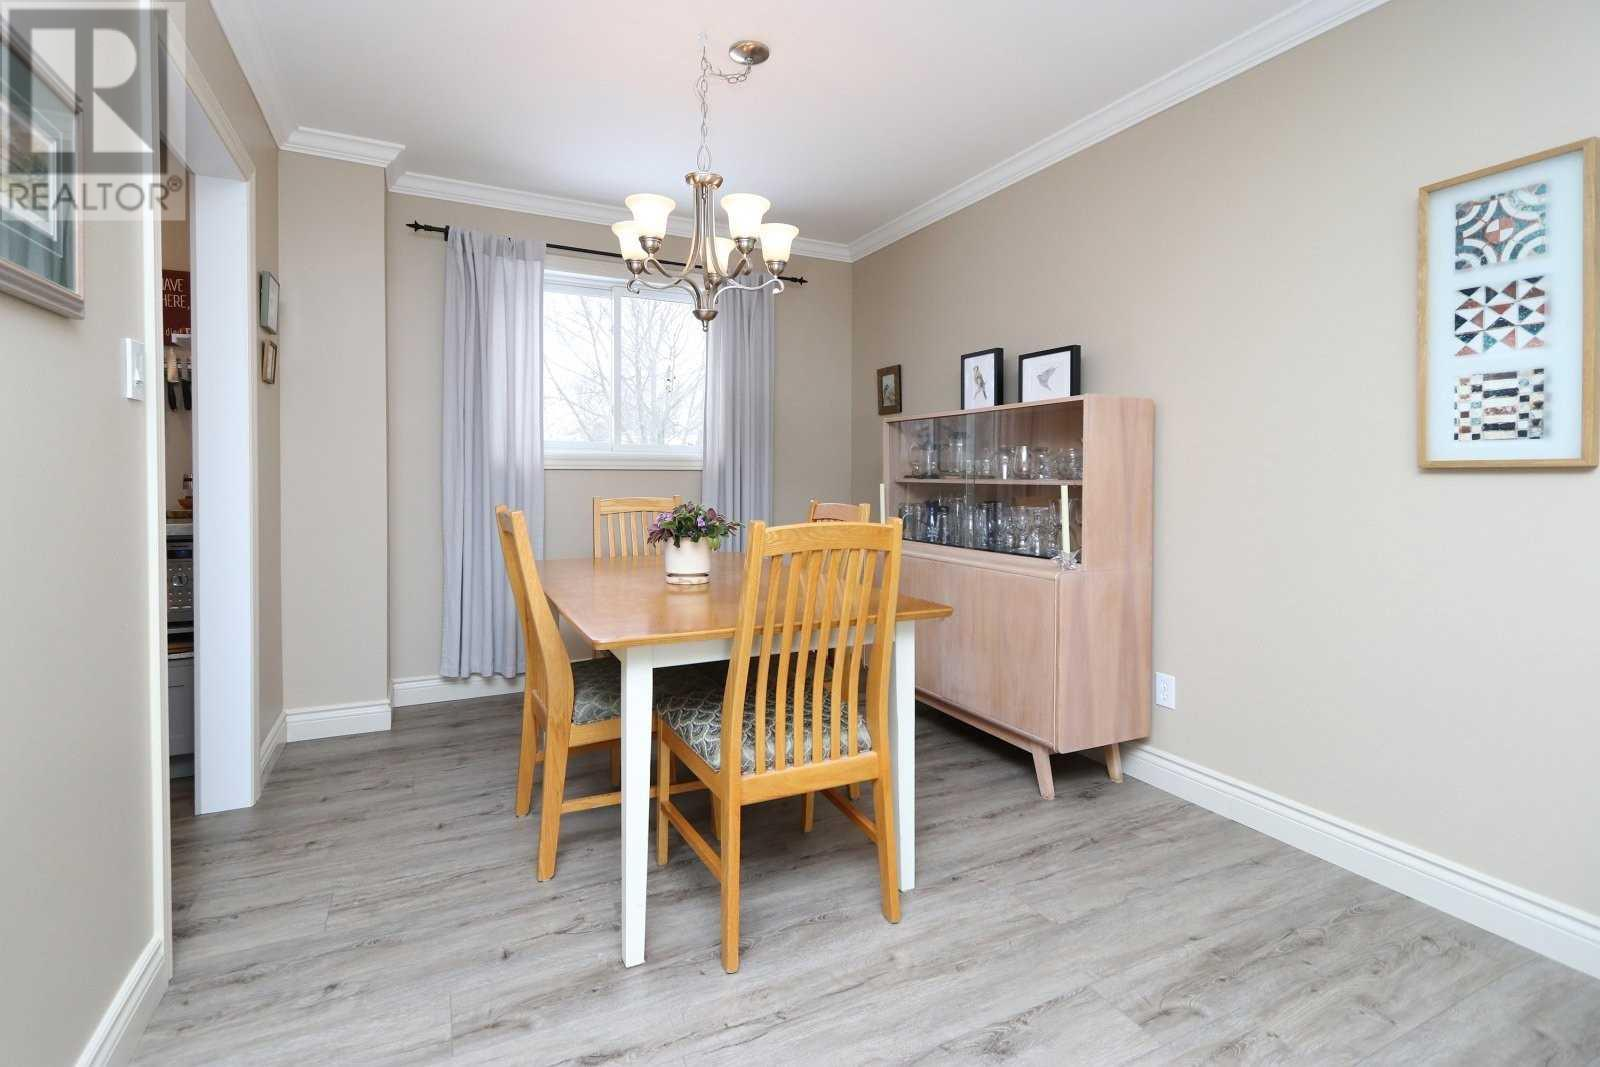 2524 Windjammer Rd, Mississauga, Ontario  L5L 1H9 - Photo 11 - W4675885